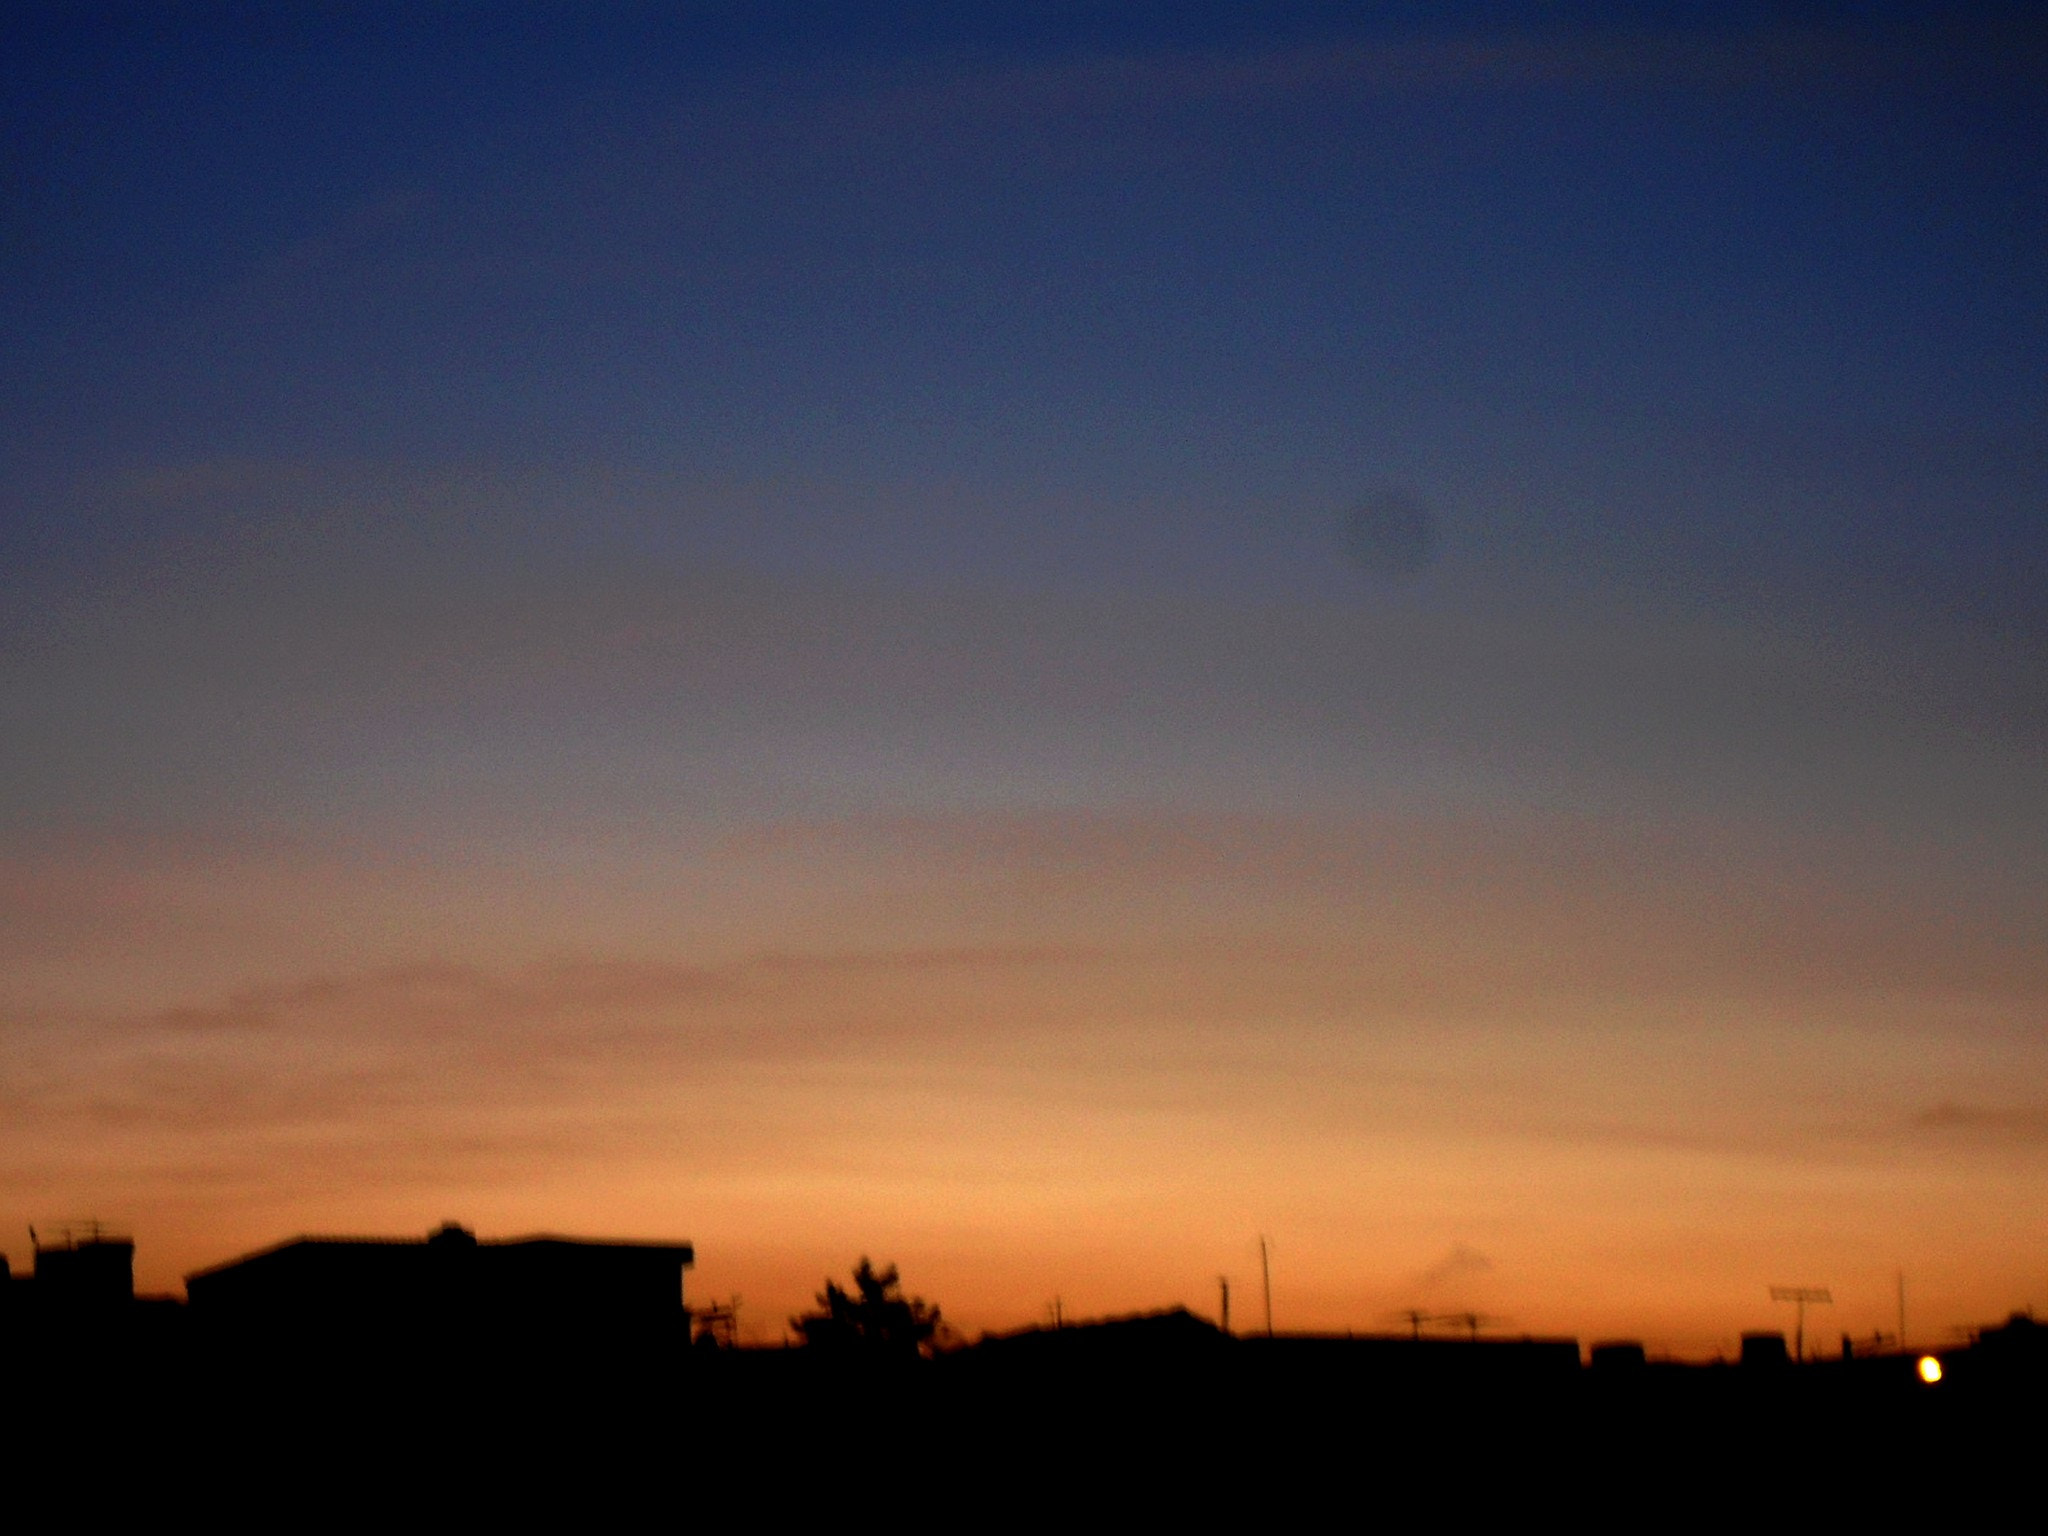 Photograph - Twilight by Jaqueline Salles on 500px